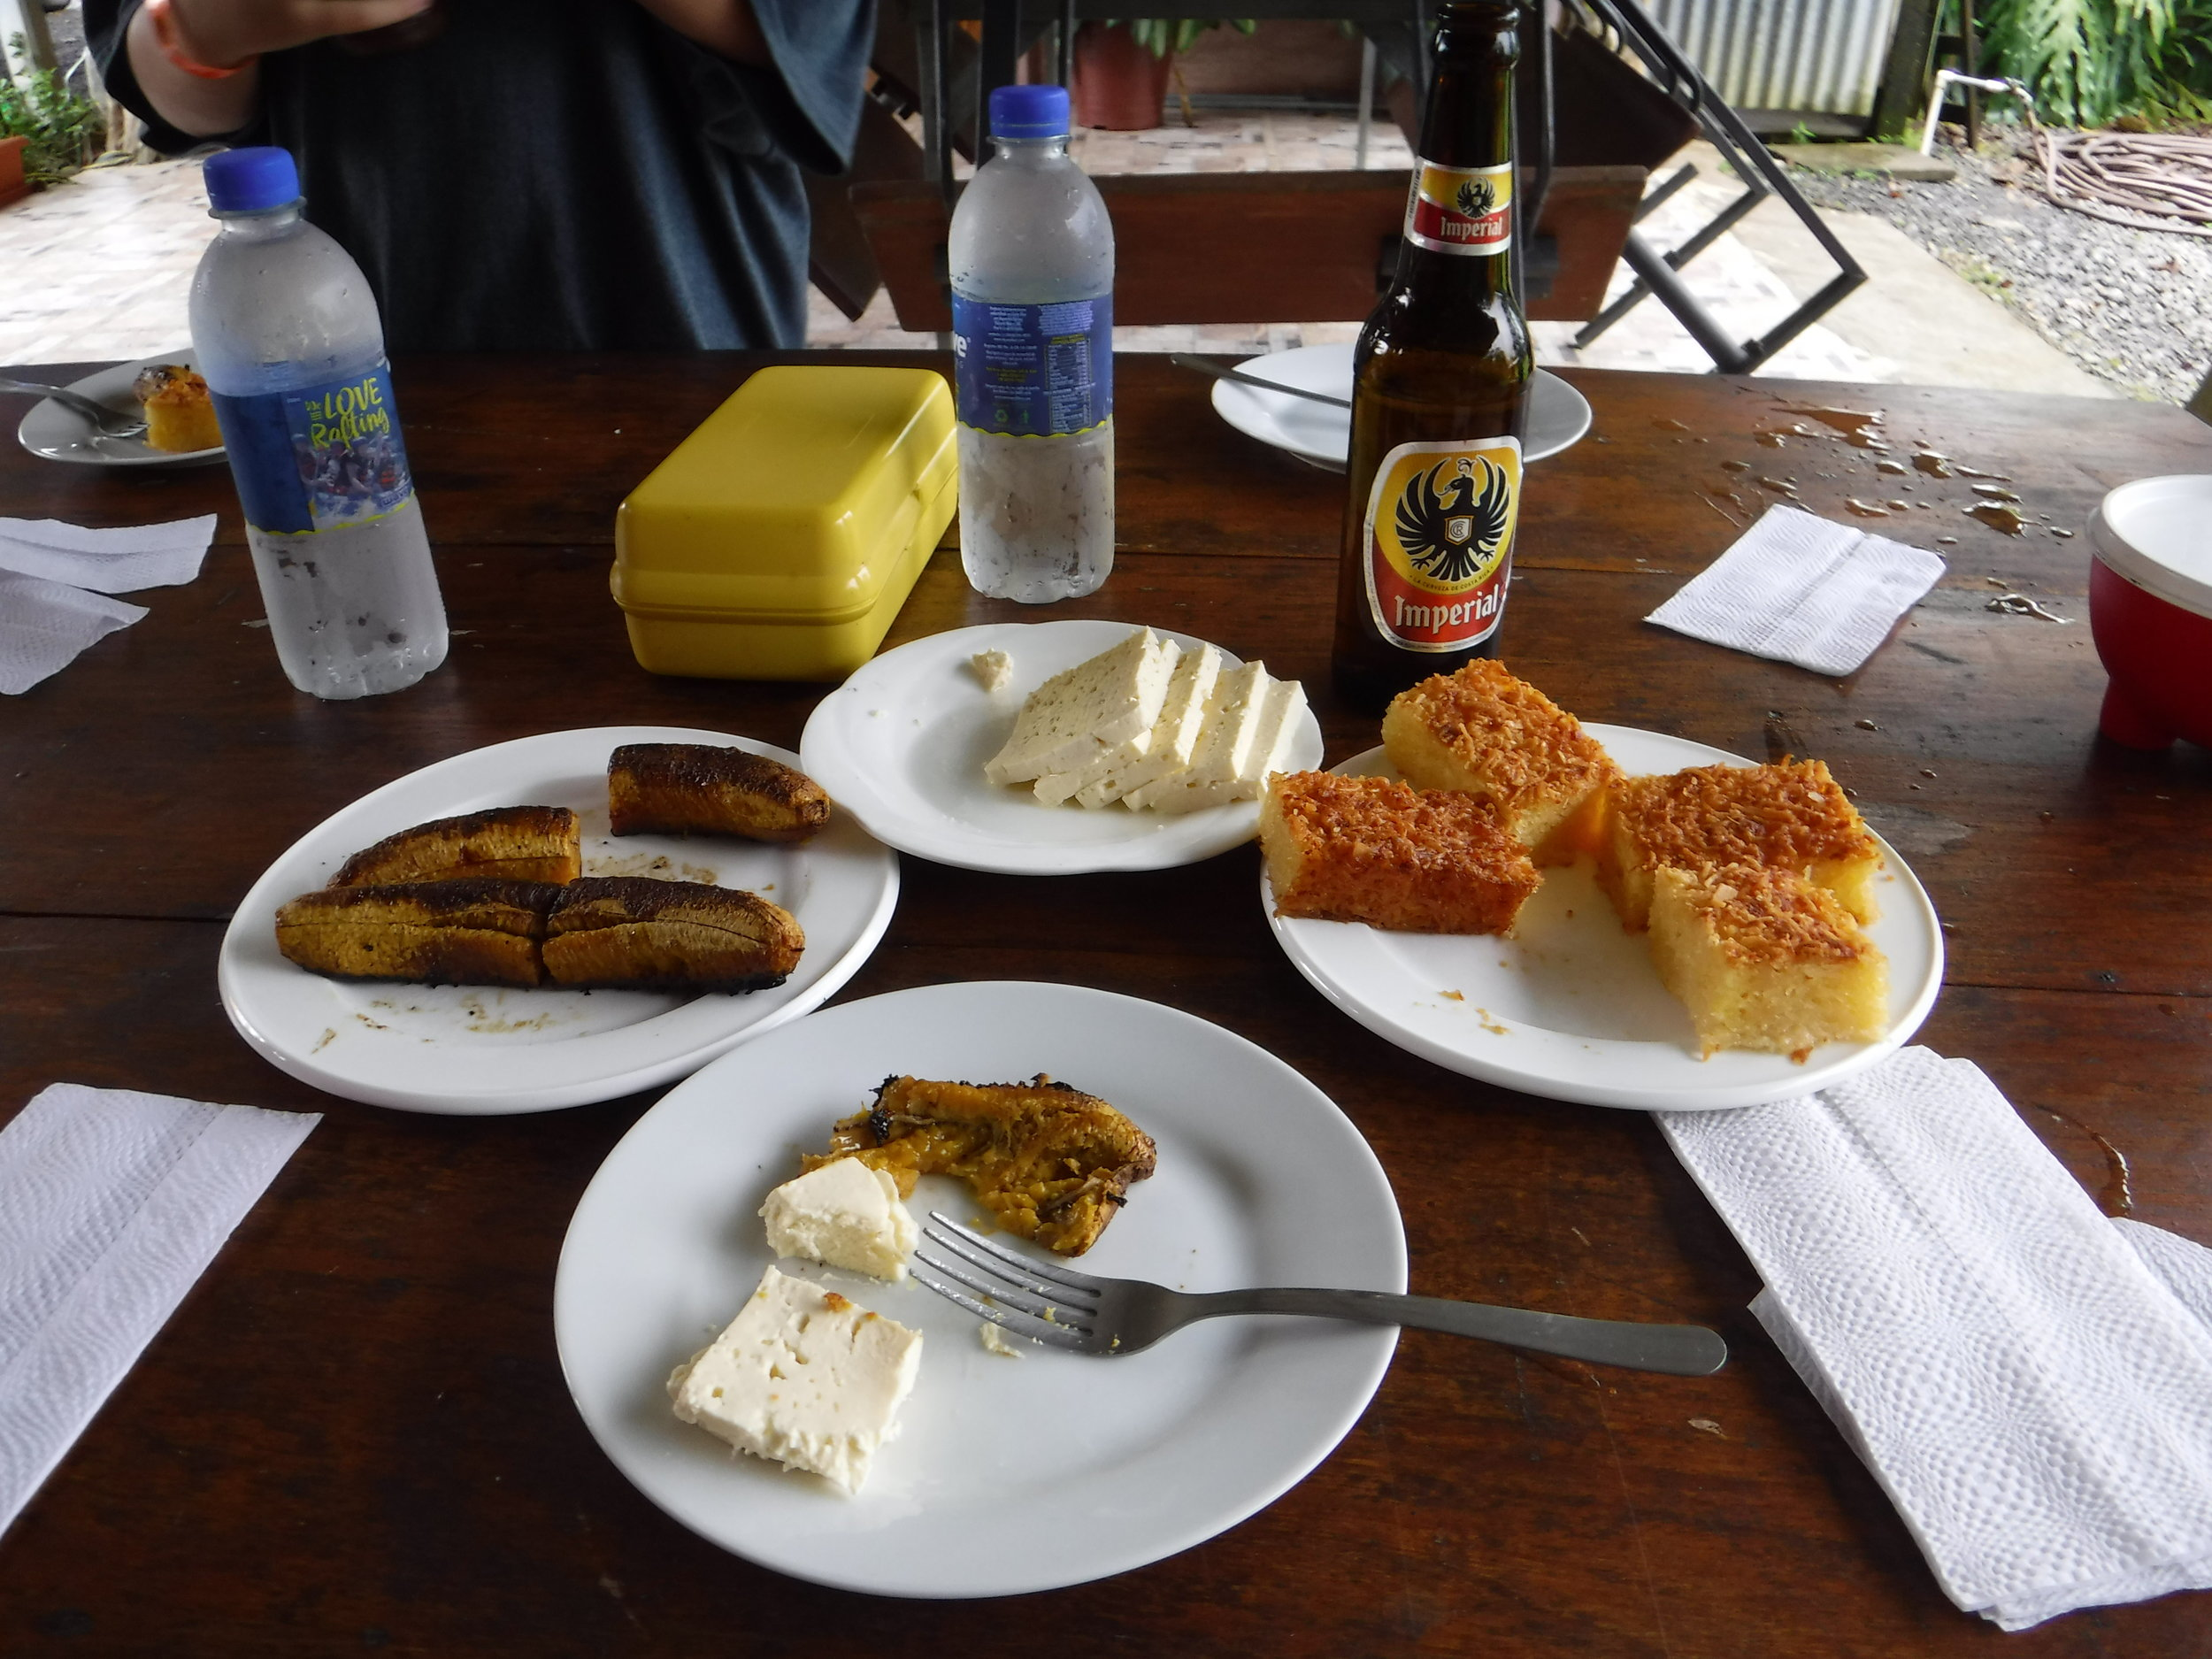 After our rafting adventure, we were treated to a traditional Costa Rican snack.